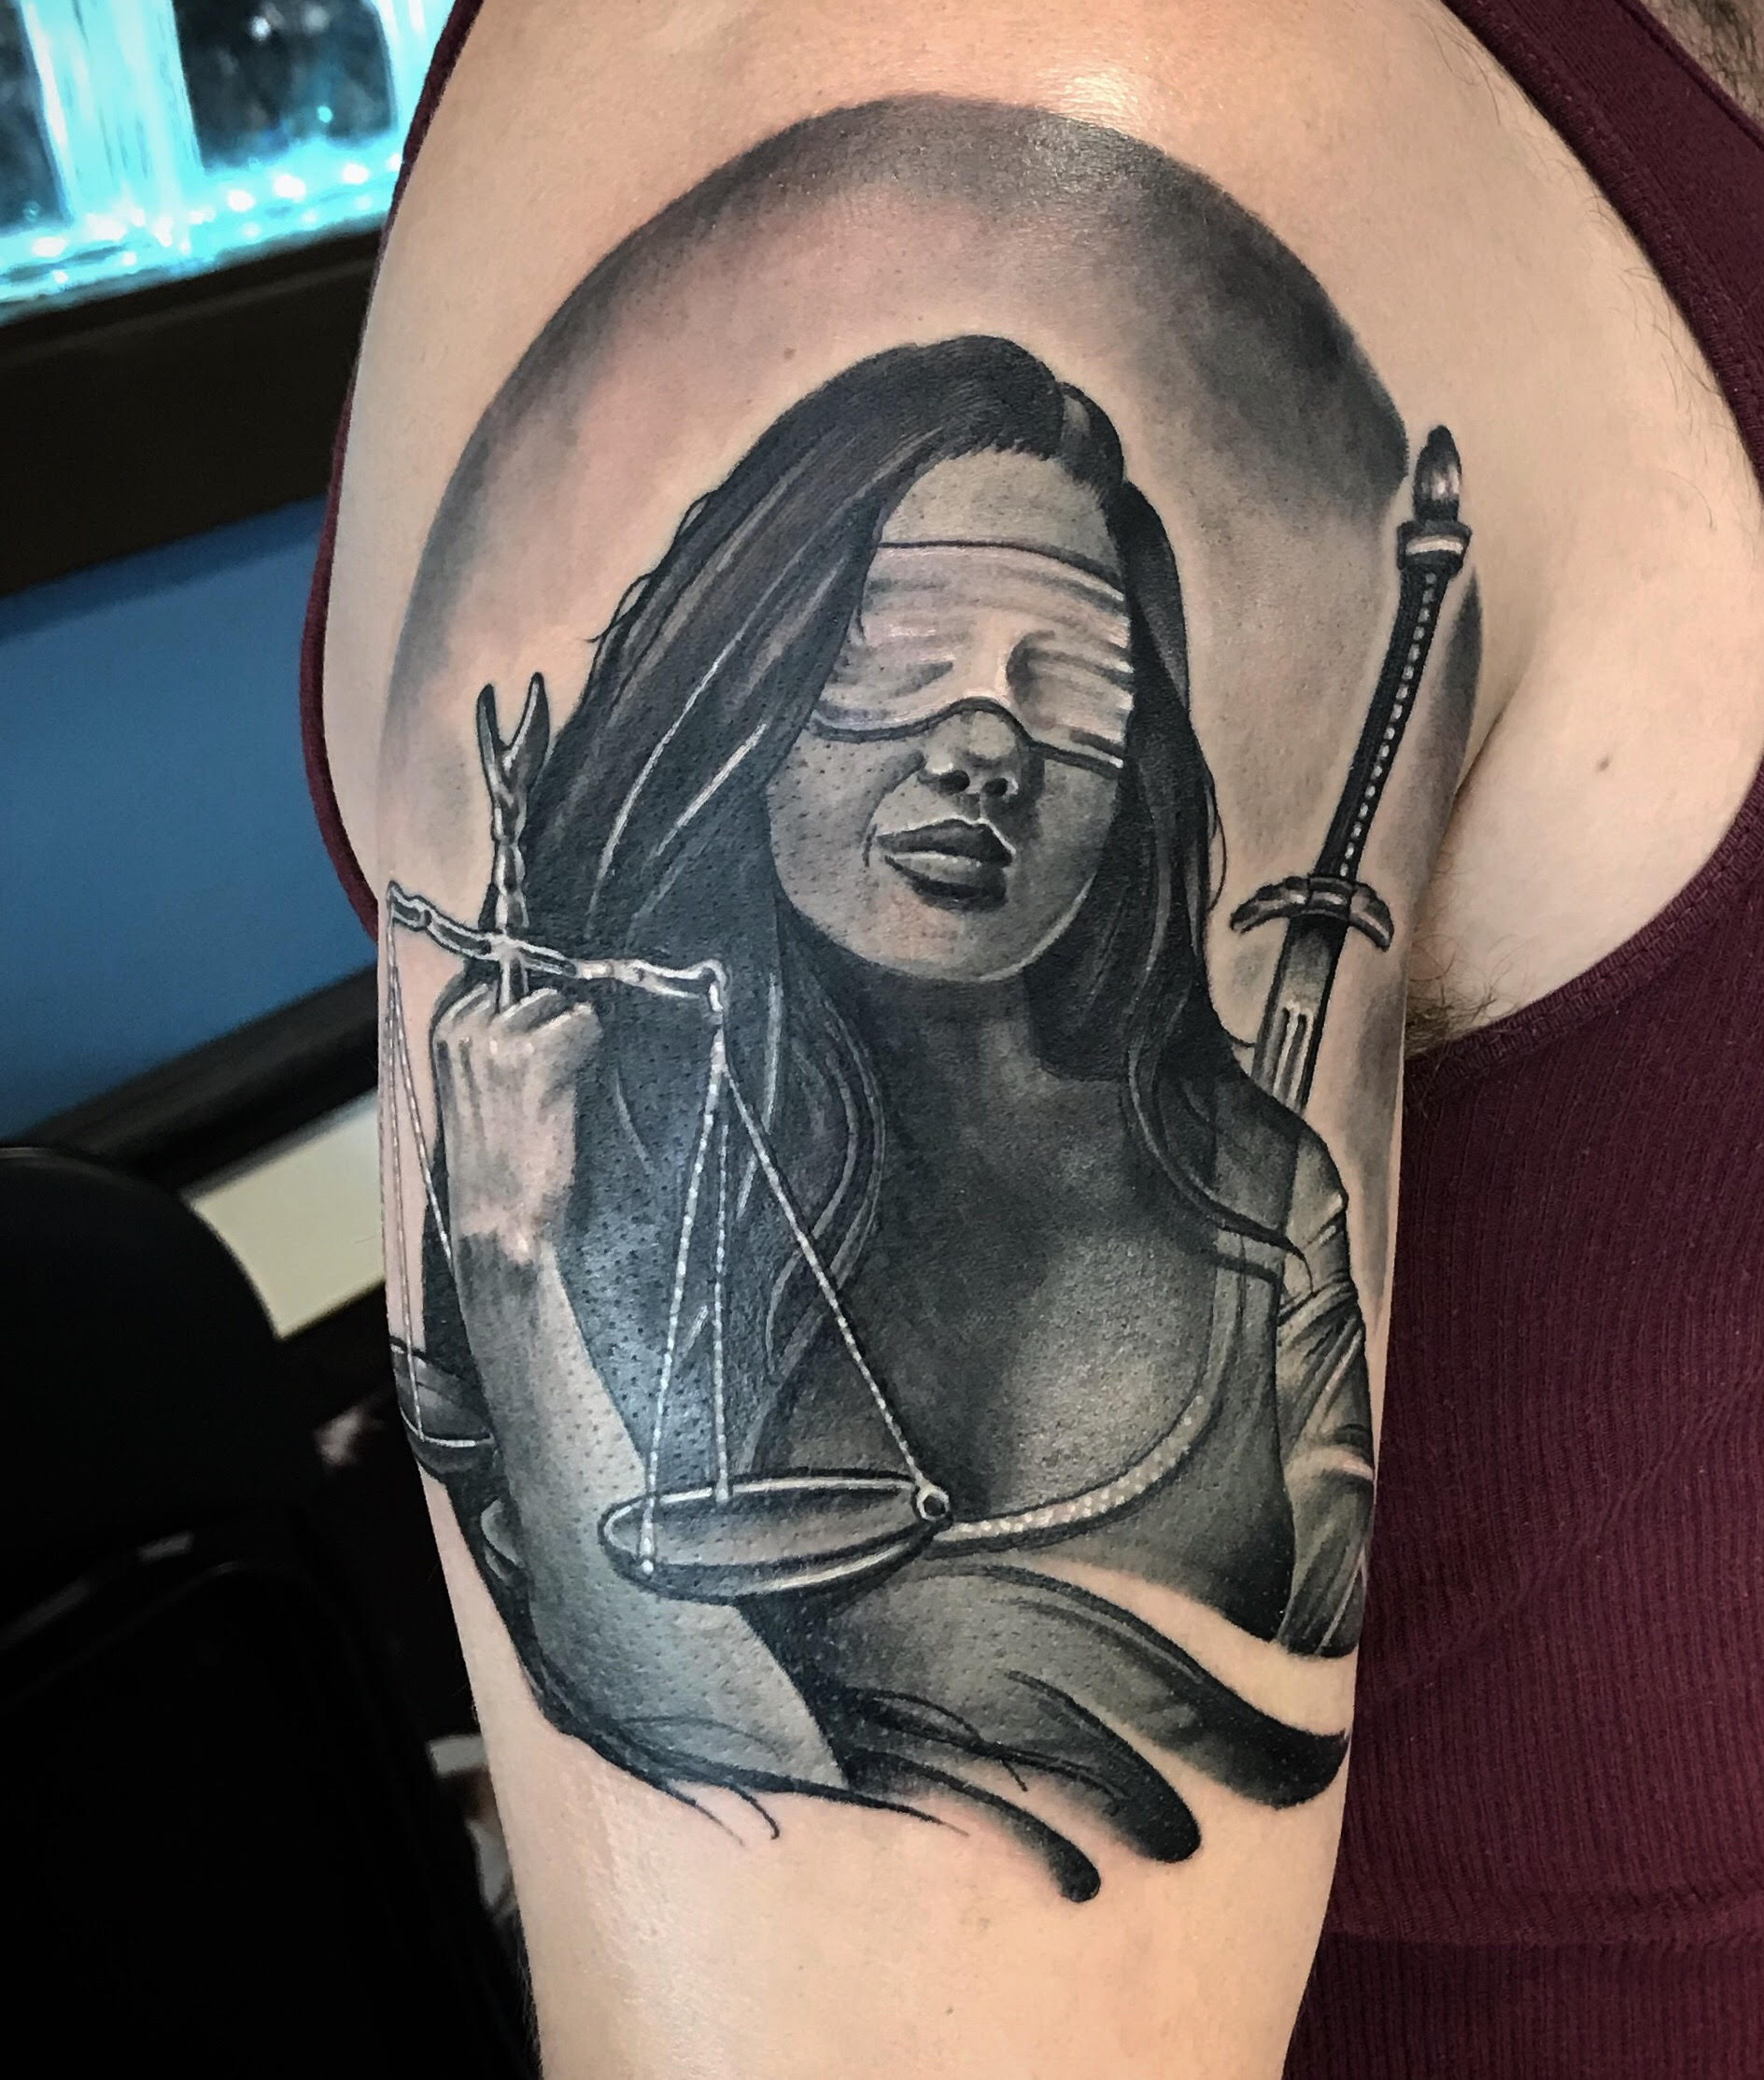 Blind Justice Tattoo by Krystof